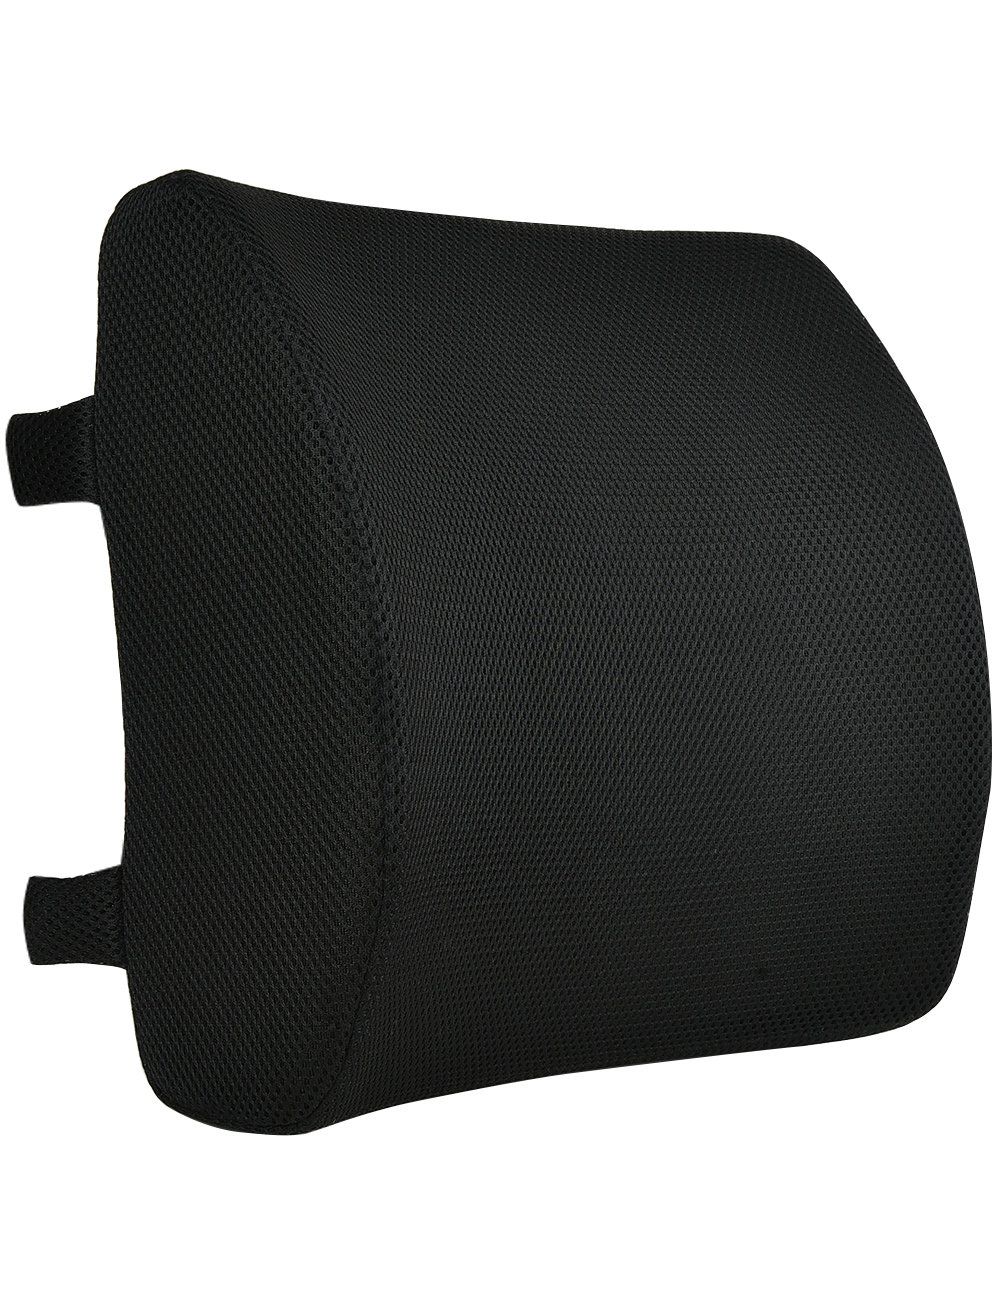 Orthopedic Memory Foam Lumbar Support Pillow for Office Chair, Car Seat, Pregnancy, Lower Back Support with Adjustable Dual Strap, Removable Mesh Cover-Portal for Women, Men Outdoor, Airplane Travel